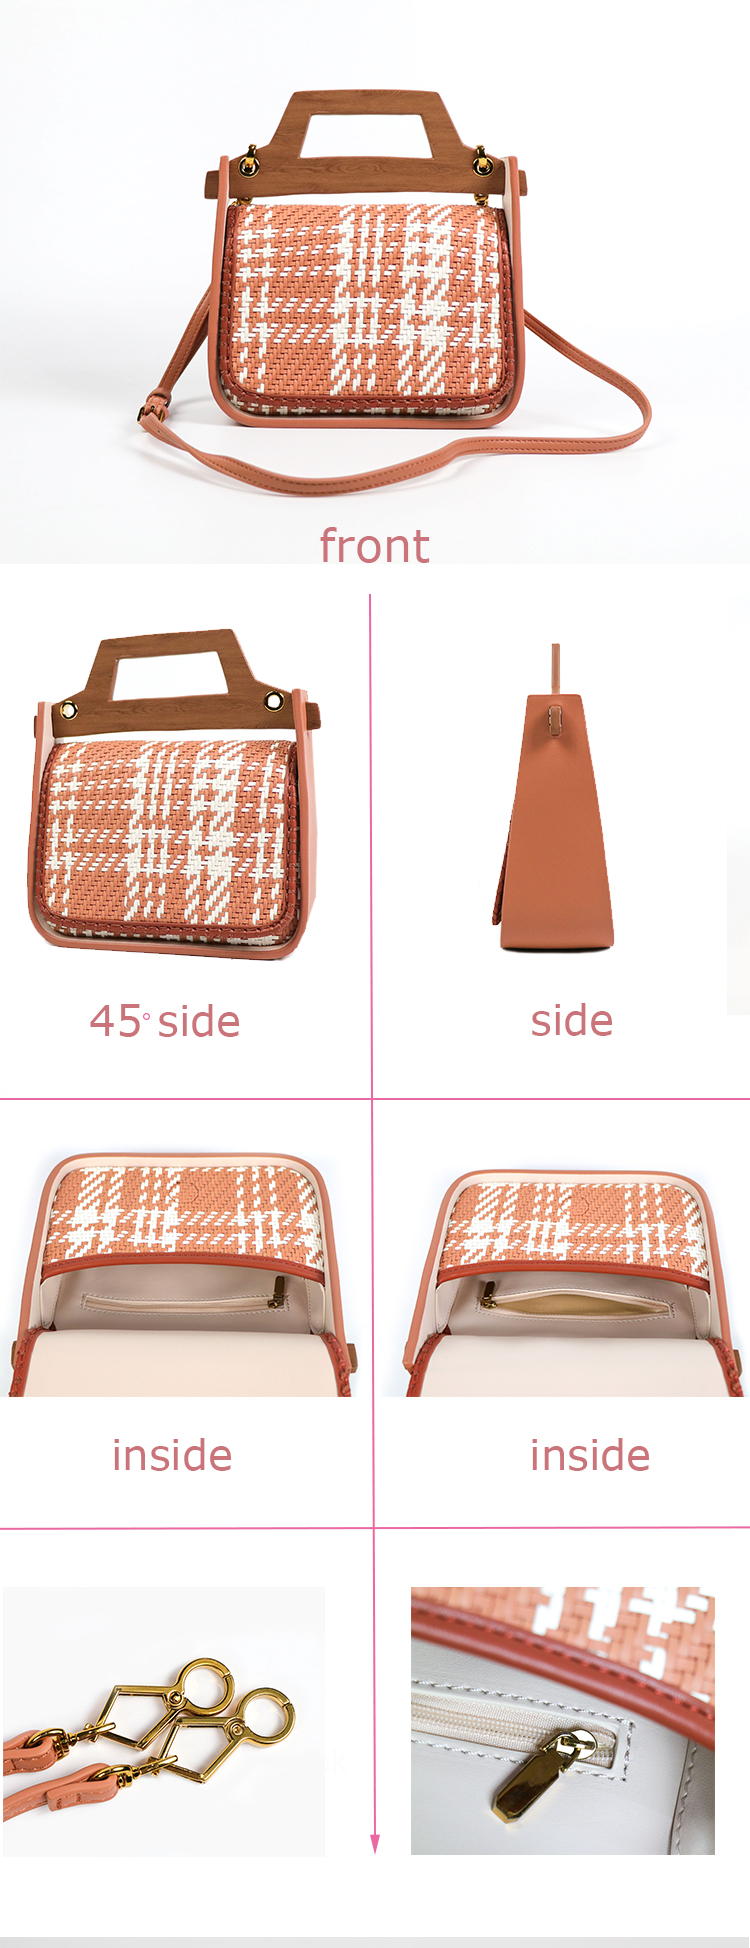 hot selling wood handle woven classic ladies pu leather hand bags elegant women handbag purse